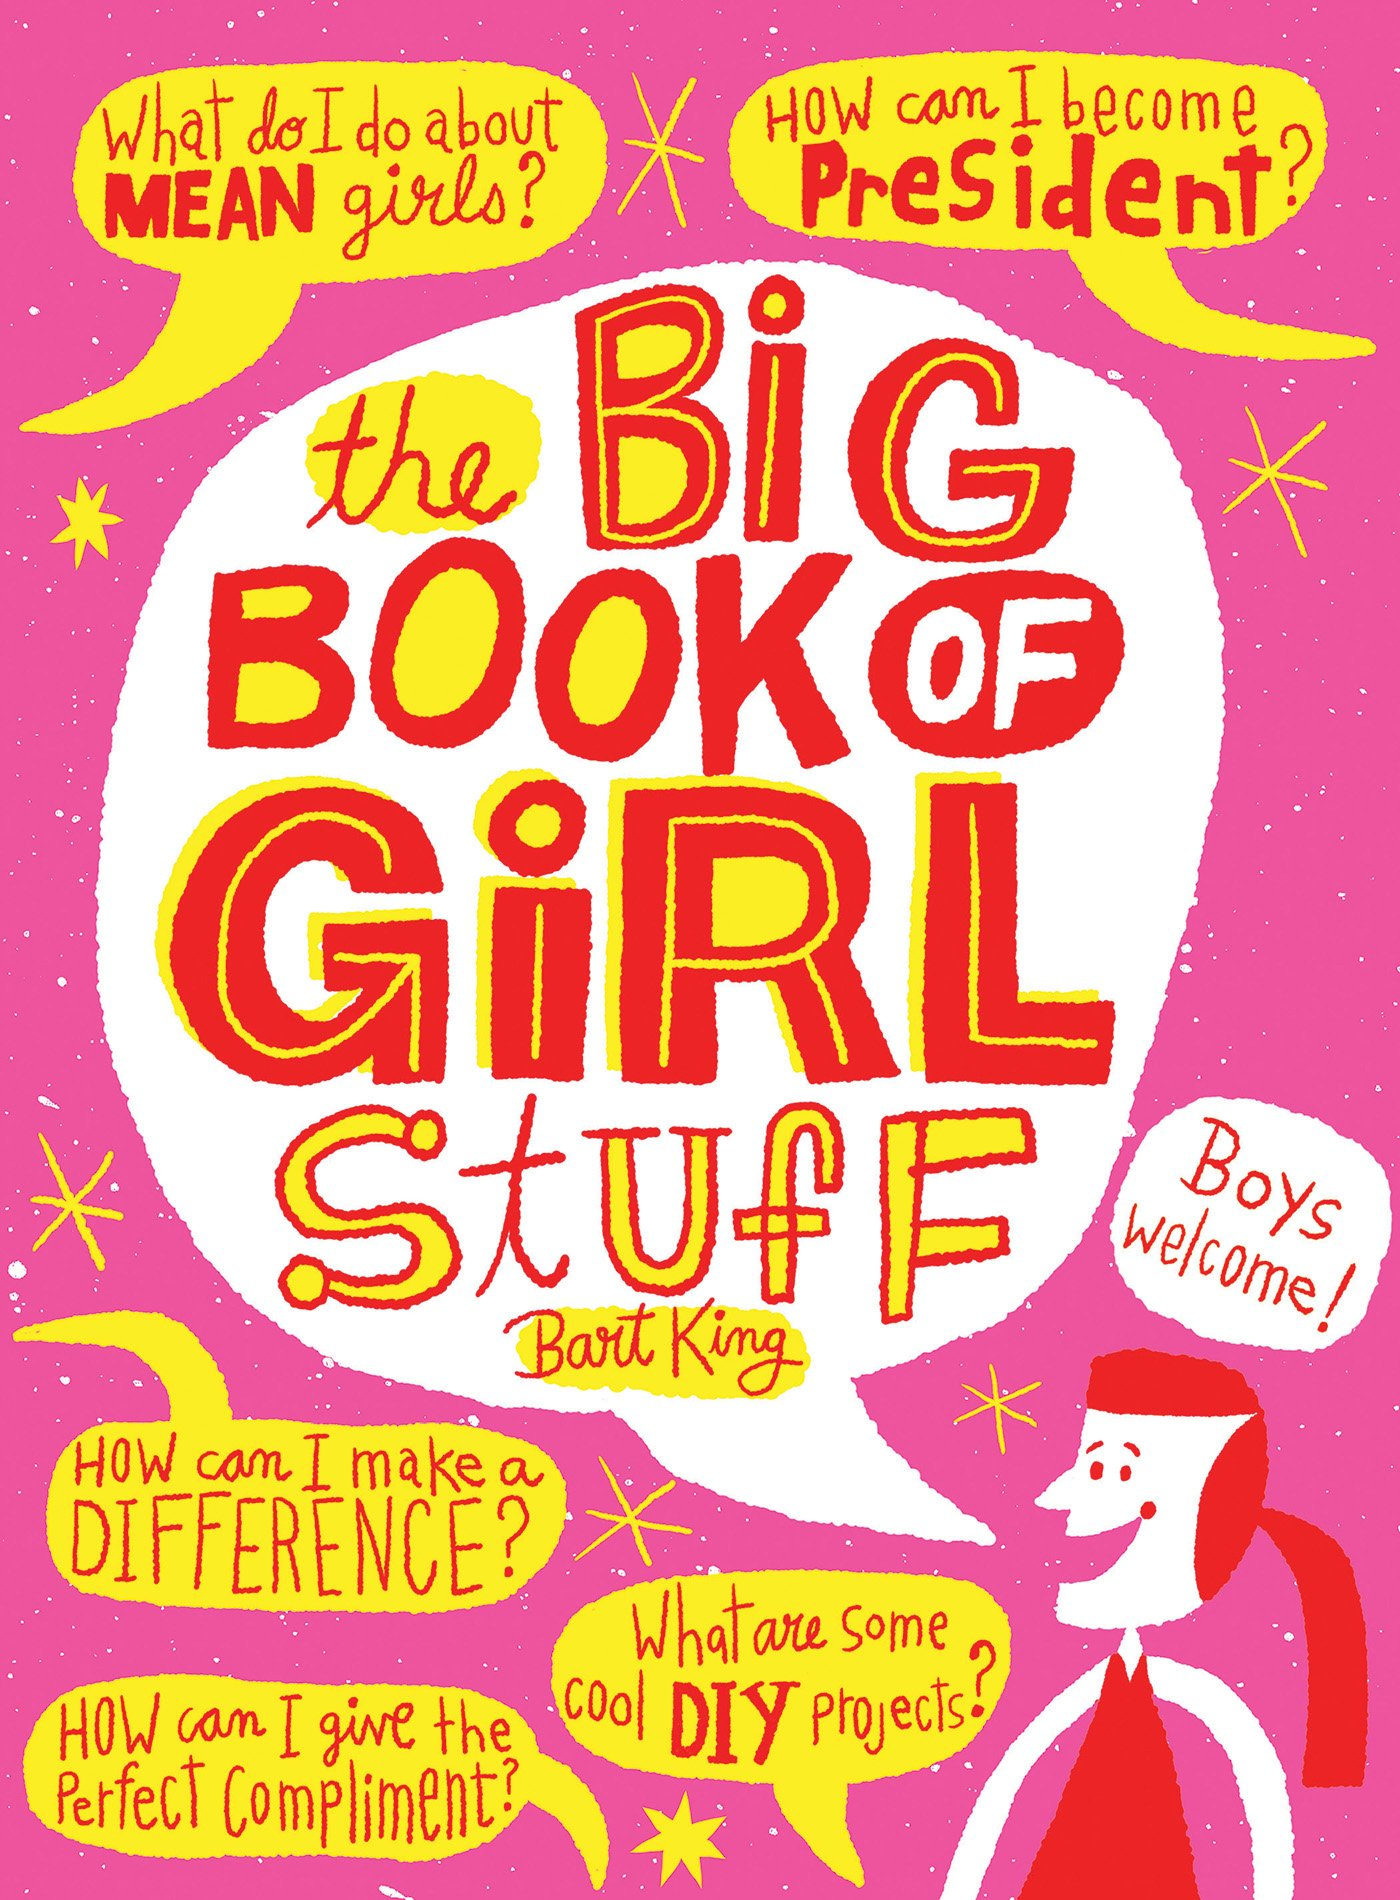 The Big Book of Girl Stuff: Bart King, Jennifer Kalis: 9781423637622